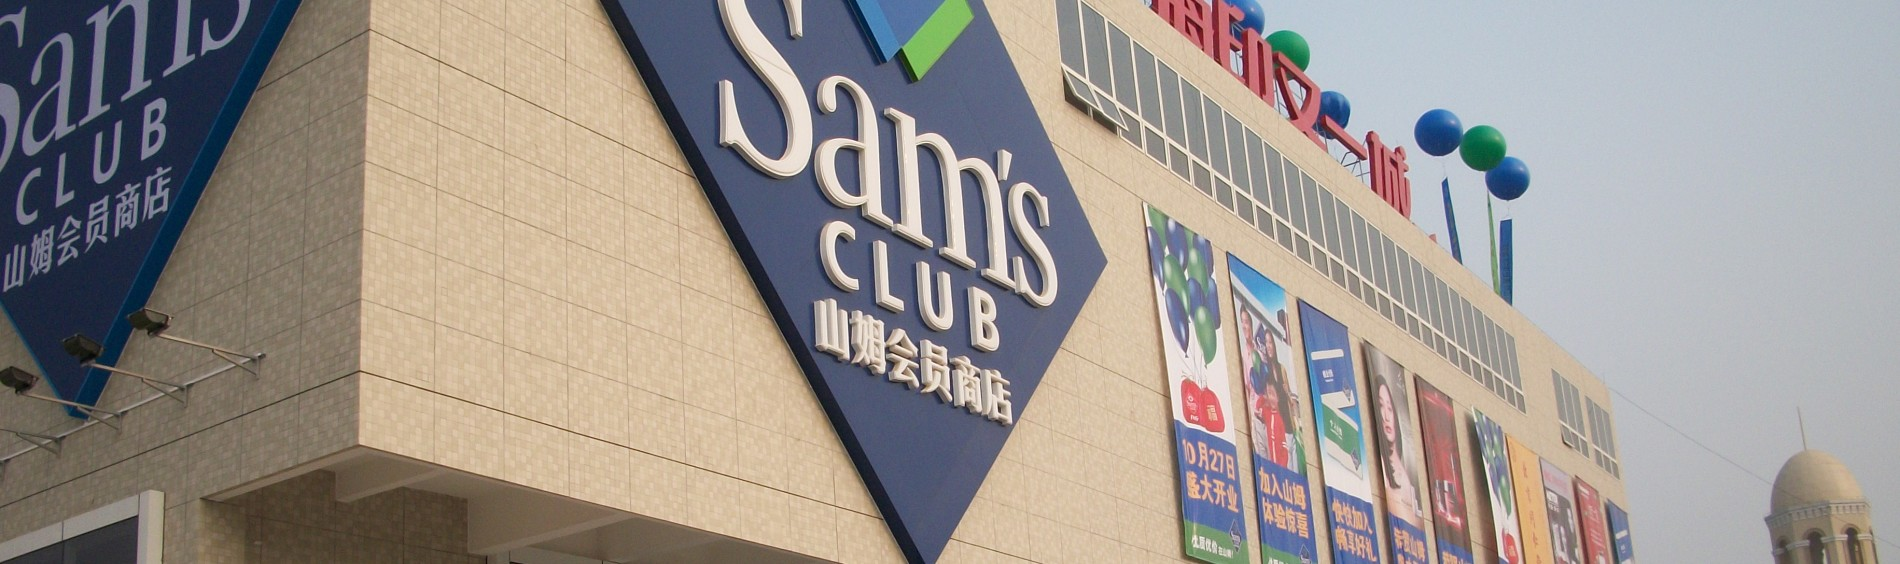 Exterior of Sam's Club building